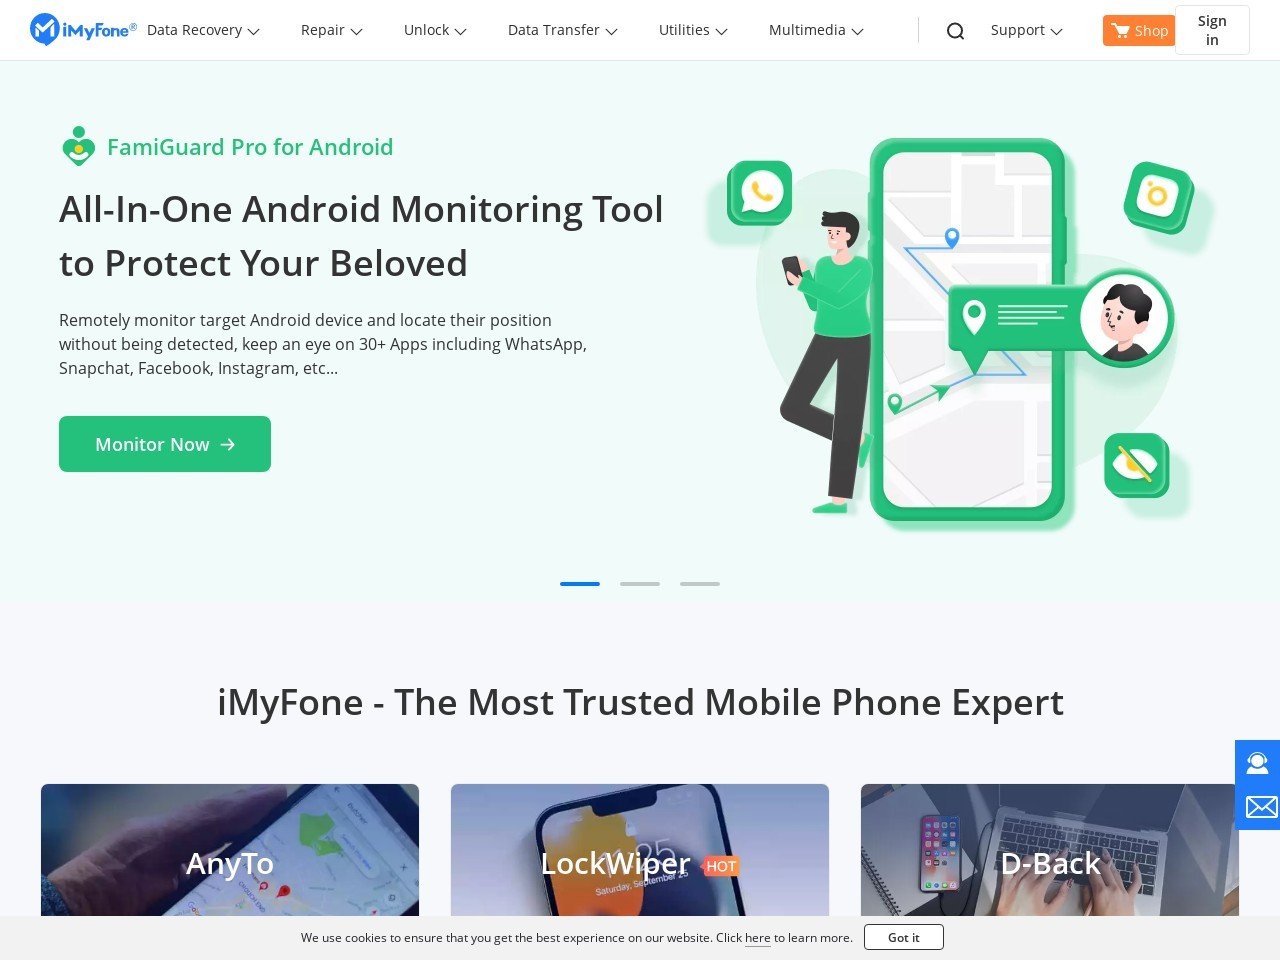 iMyfone D-Back (Windows version) – Personal License Coupon Code – $45 OFF